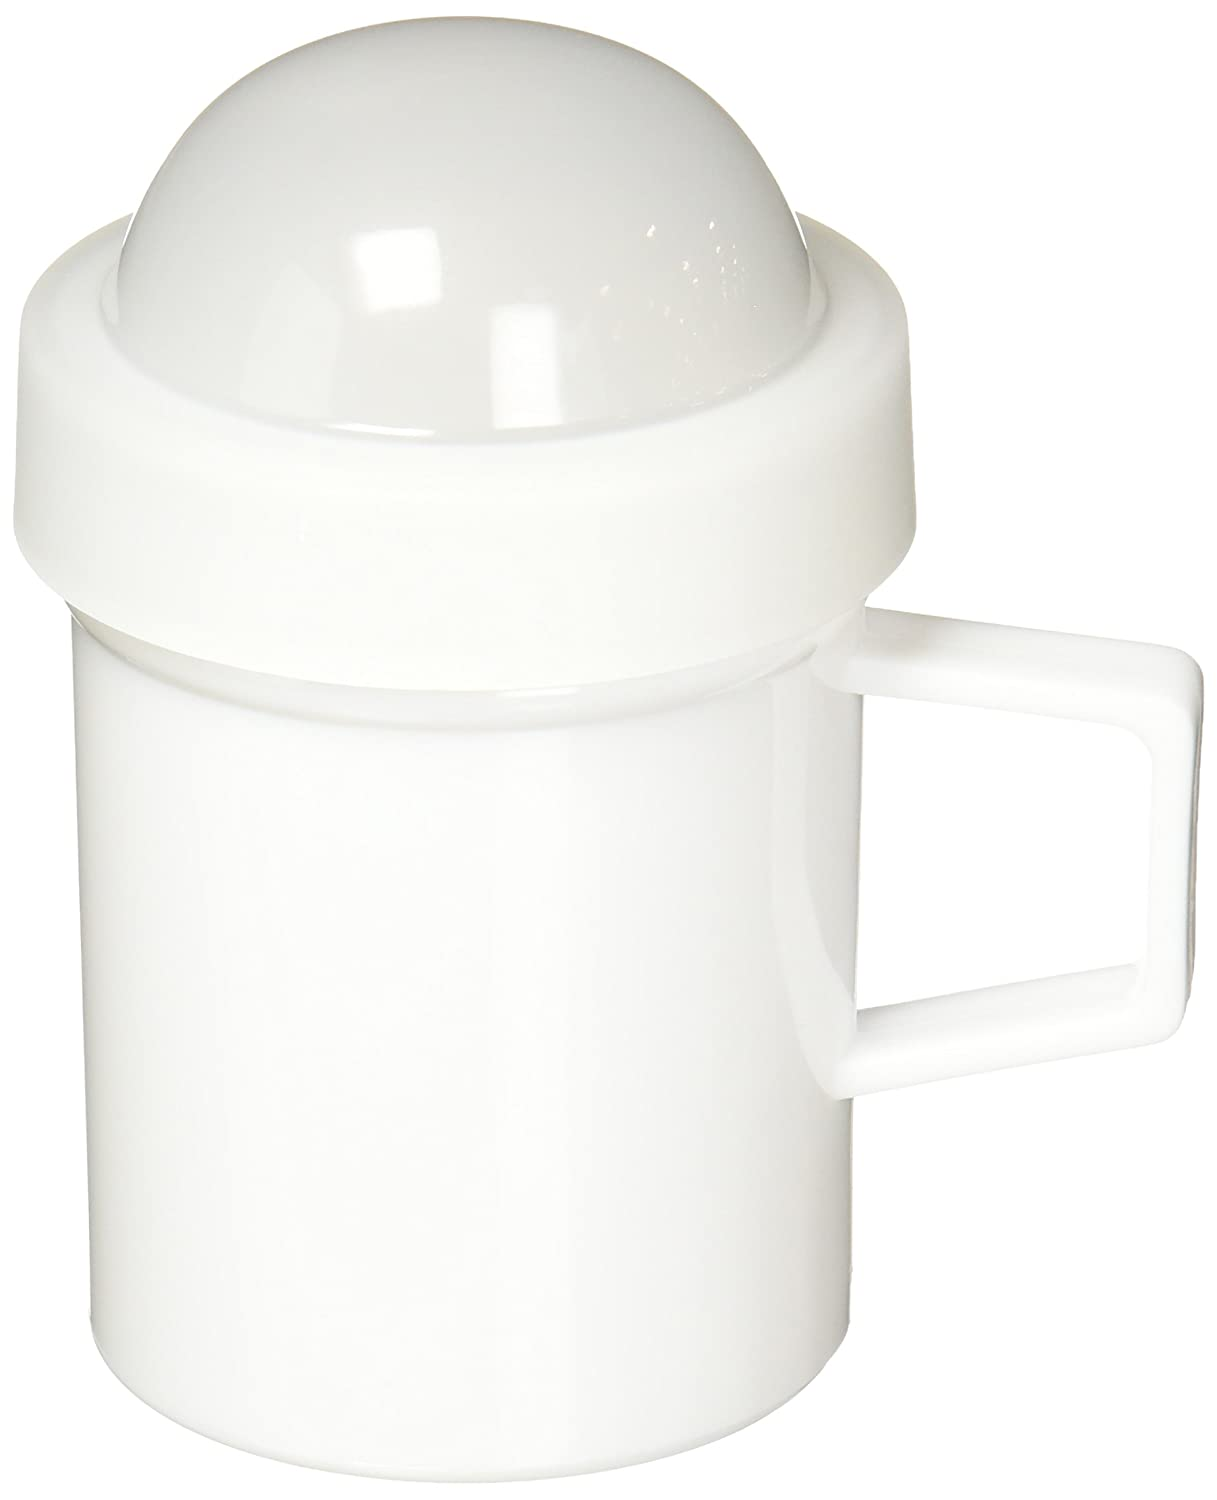 Norpro Sugar and Flour Shaker 199